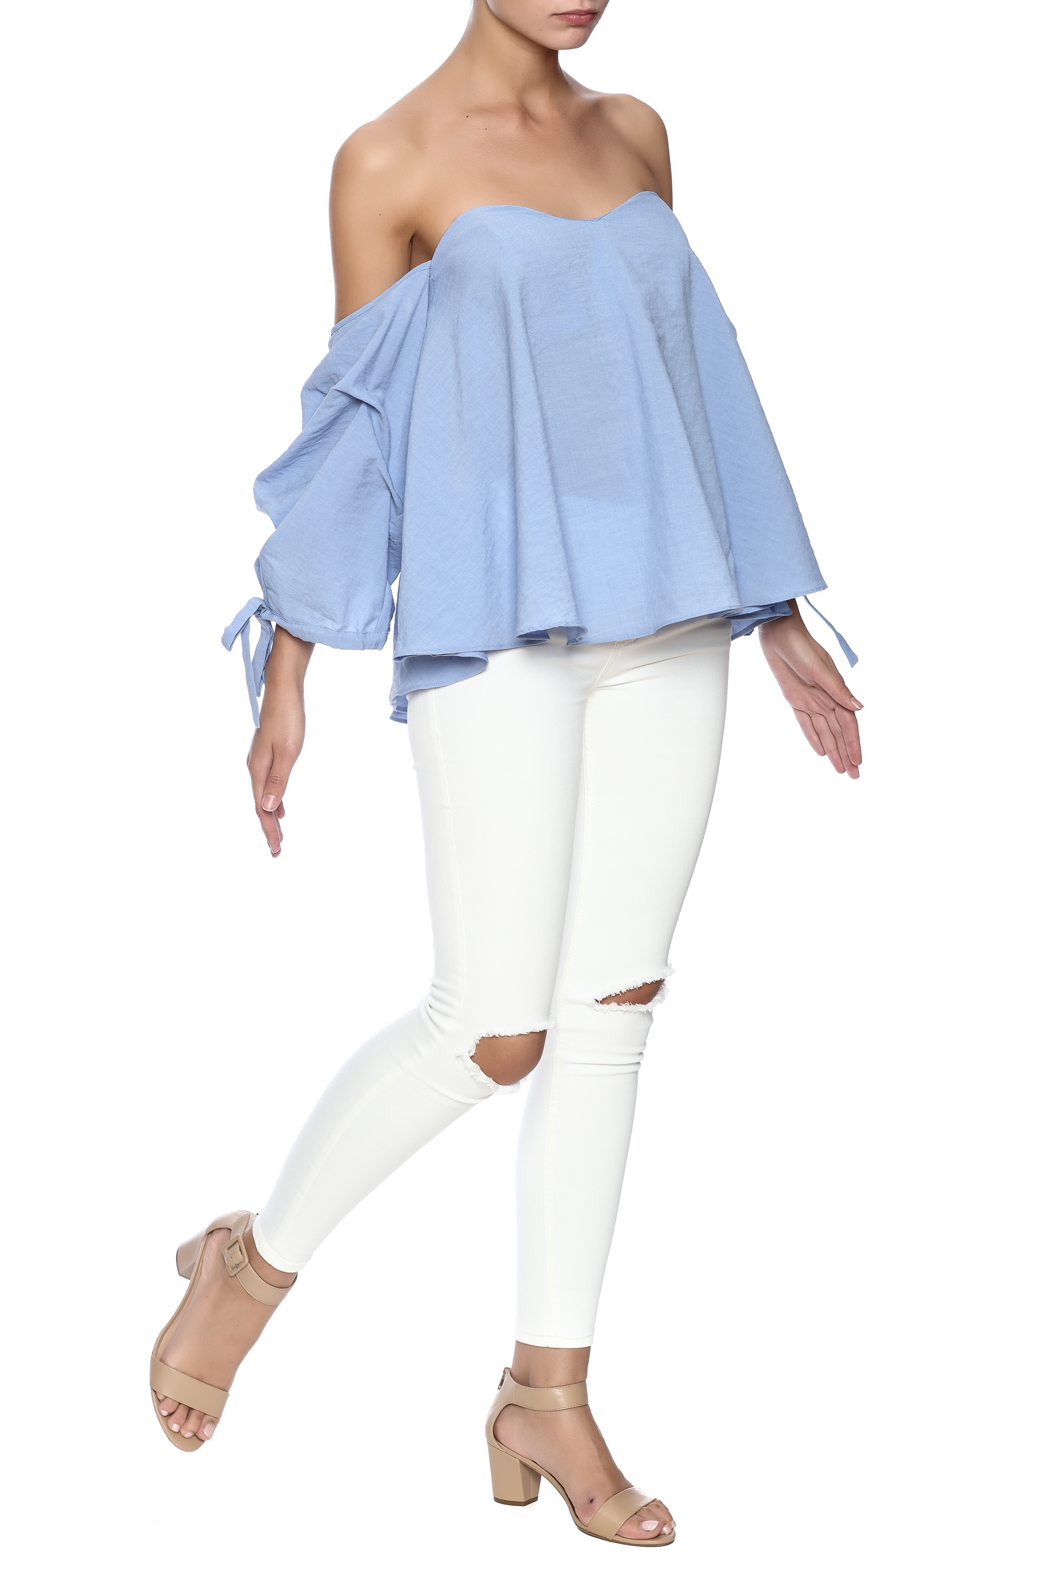 Do & Be Blue Flowy Top - Front Full Image